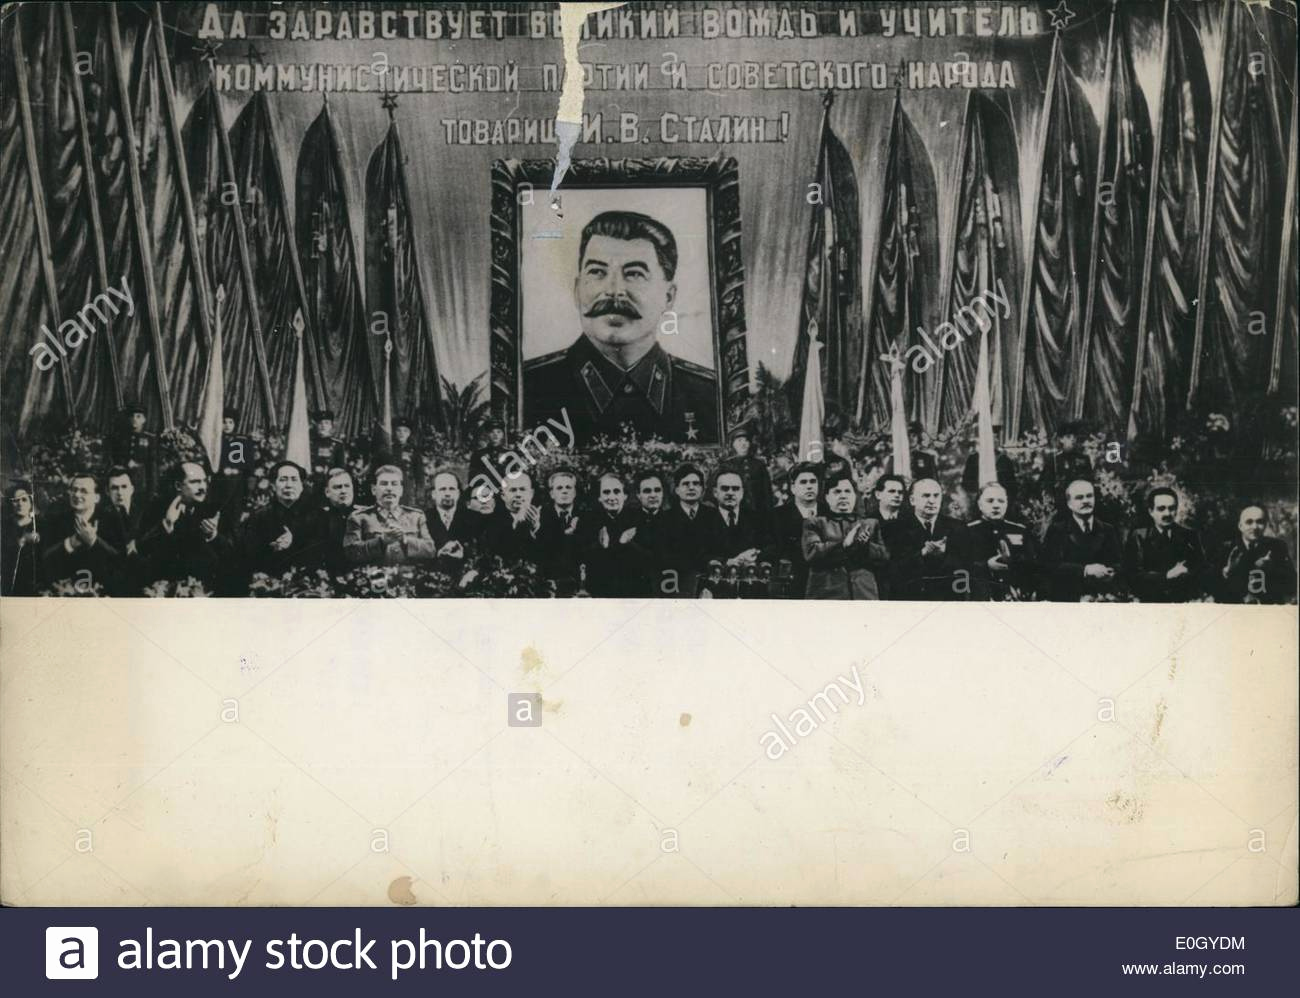 Bilder 70 Geburtstag Frisch Jan 1 1940 Stalin S 70th Birthday the Occasion Od the 70th